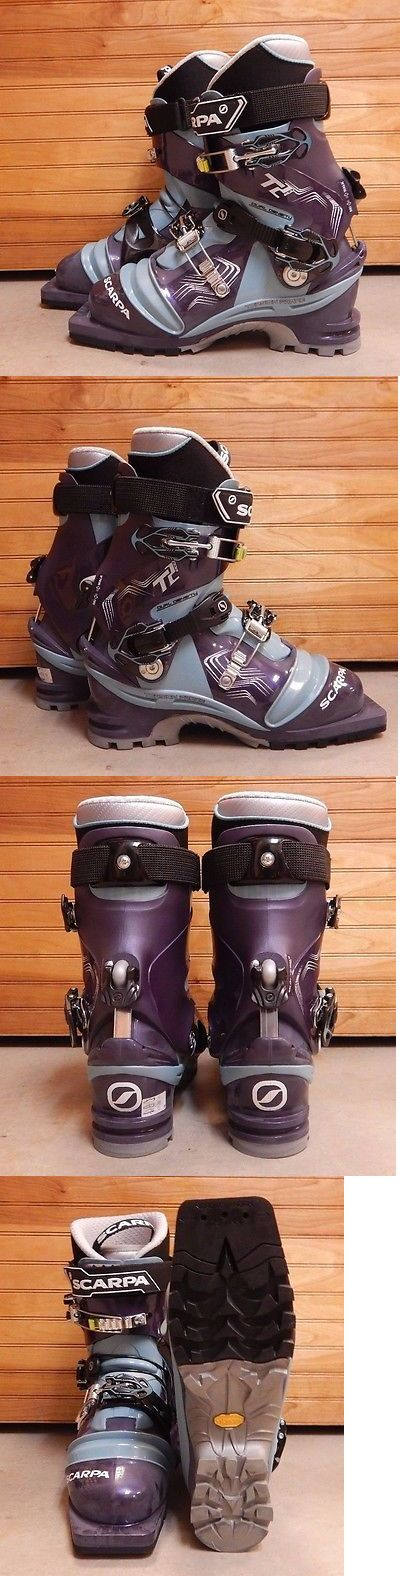 Ski Touring 104636: Scarpa Women S T2 Eco Ski Boot Size: 24.5 Color: Bg Pg Style#12211502 -> BUY IT NOW ONLY: $419.97 on eBay!